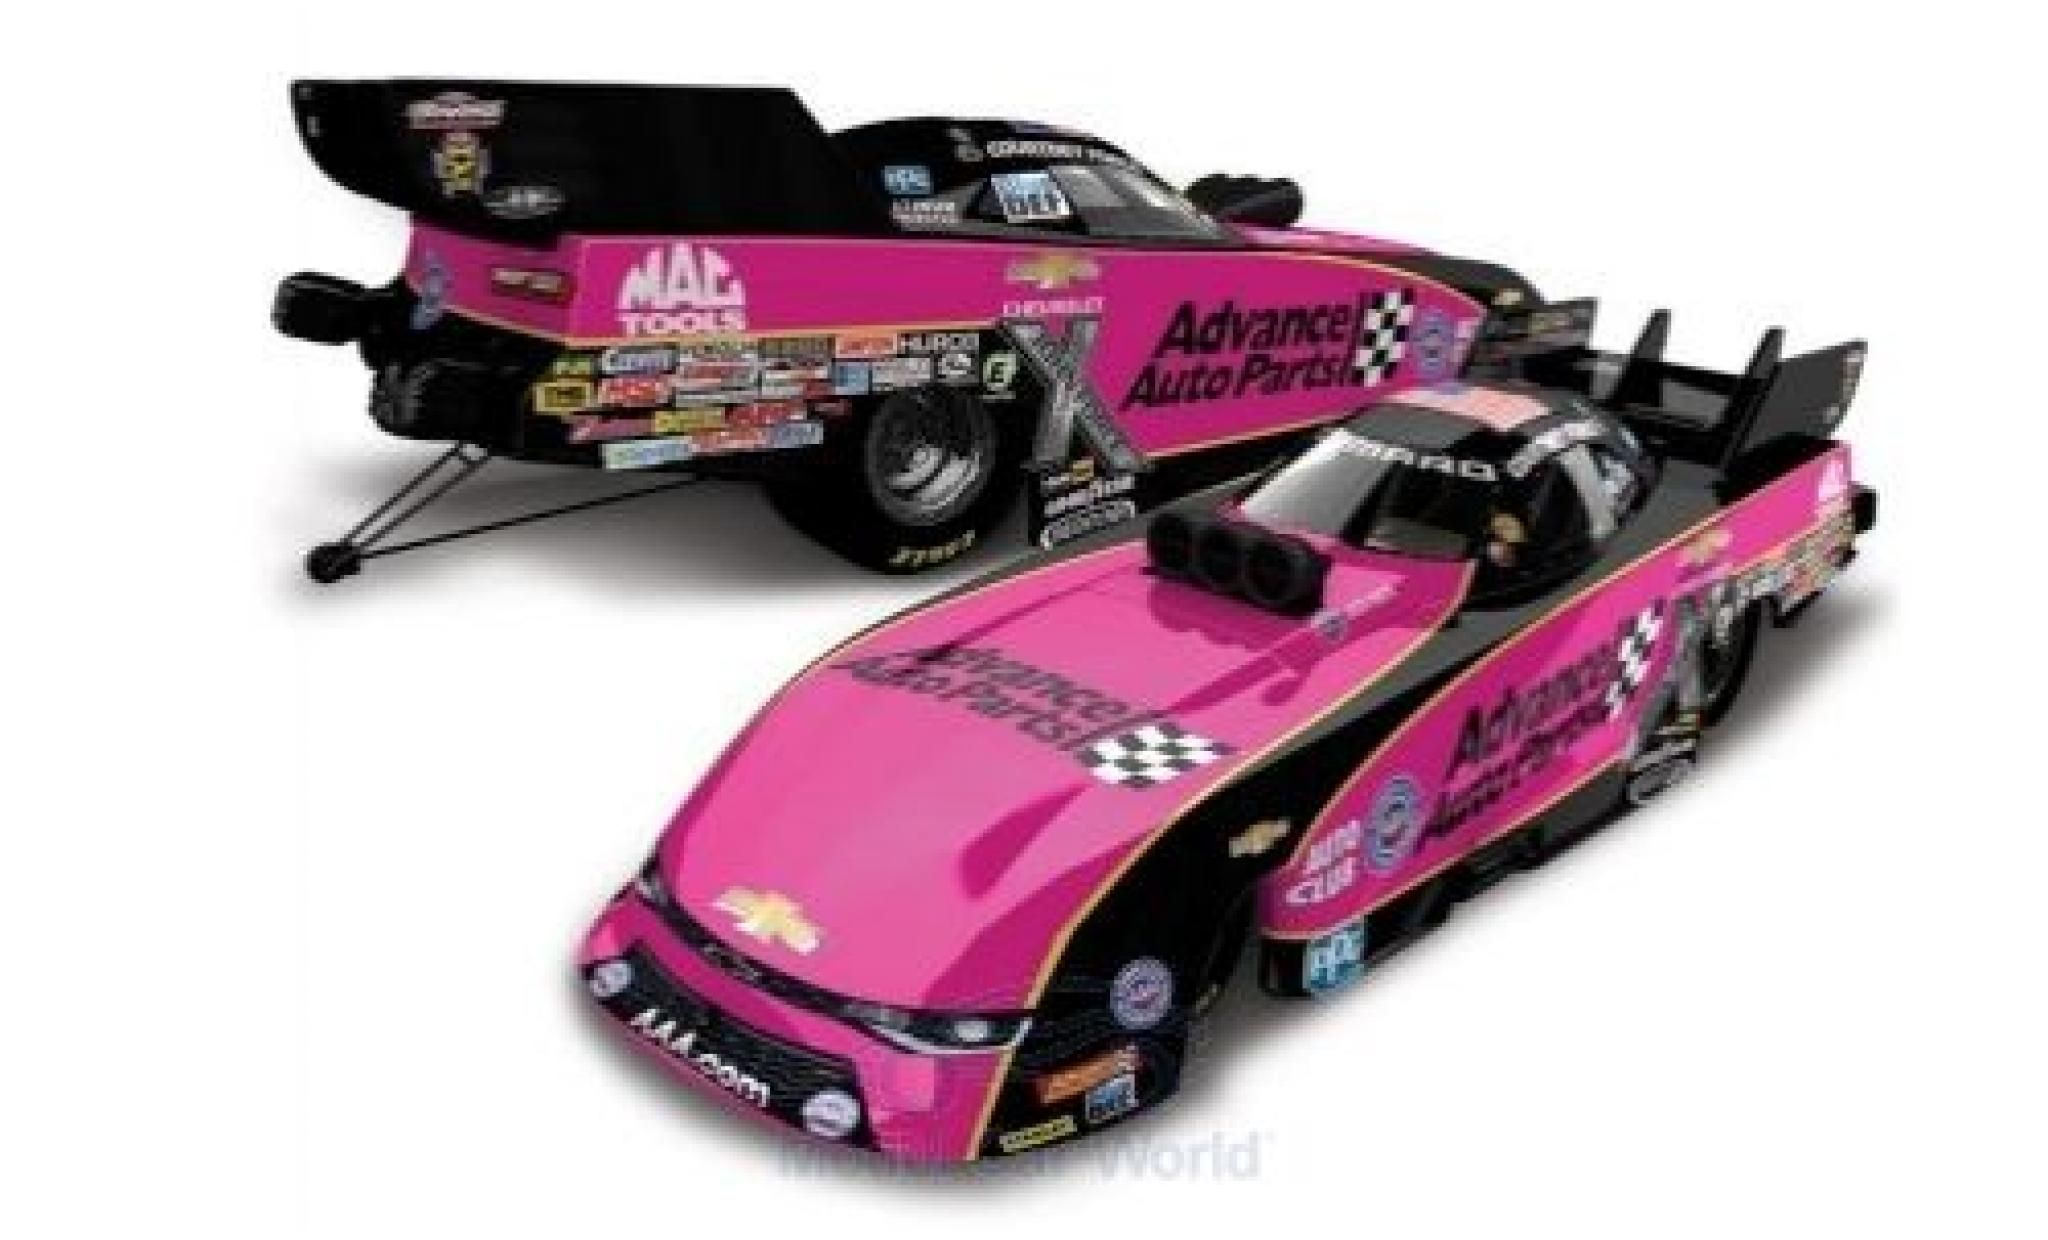 Diecast Model Cars Chevrolet Camaro 1 64 Lionel Racing Funny Car John Force Racing Advance Auto Parts Nhra 2017 C Force Alldiecast Co Uk